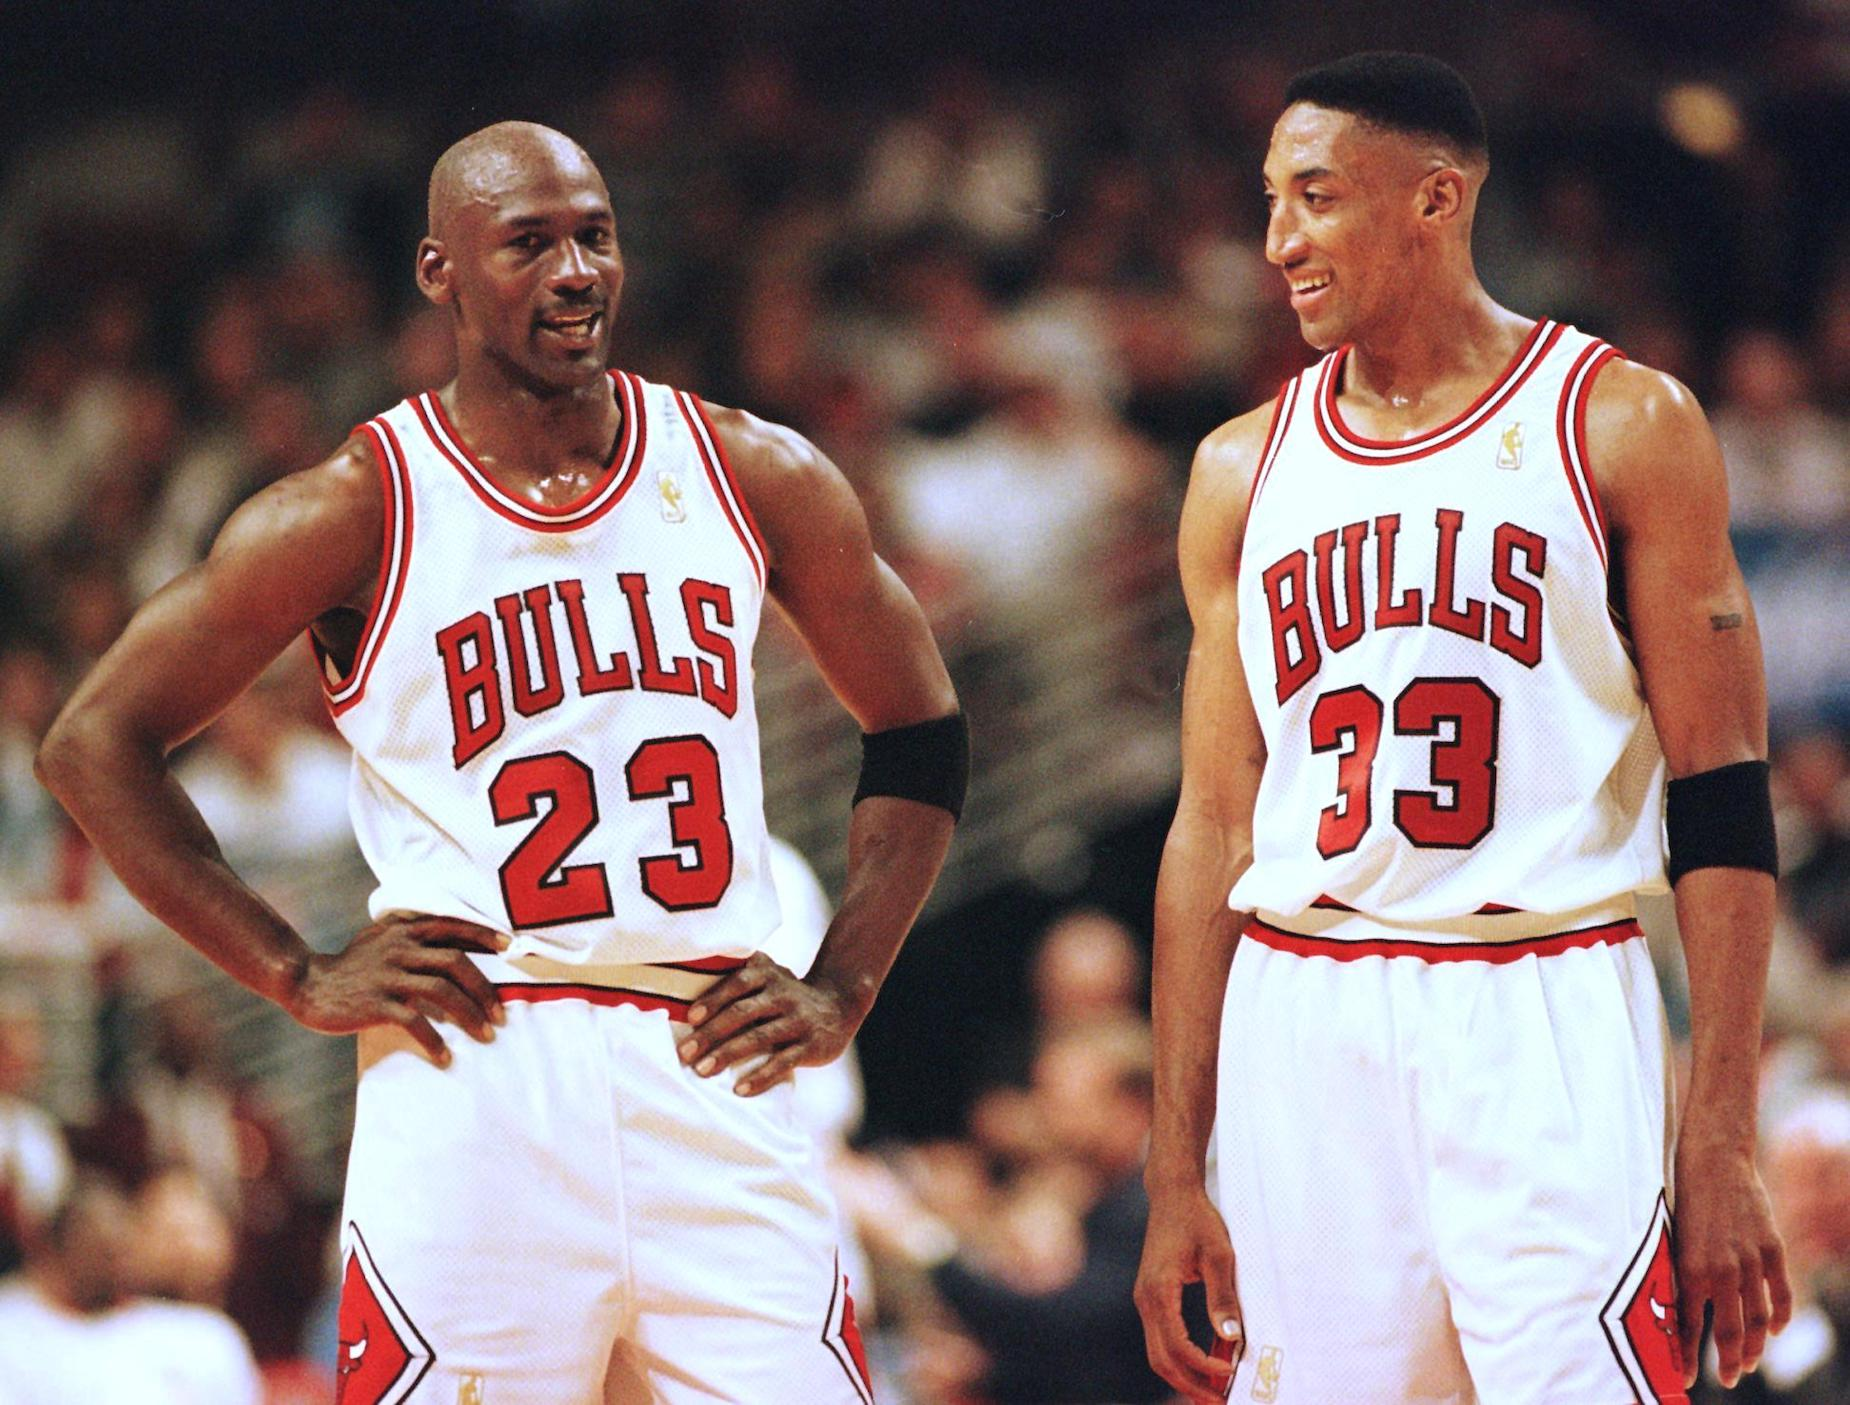 Scottie Pippen wasn't too pleased with Michael Jordan's inaccurate Last Dance.